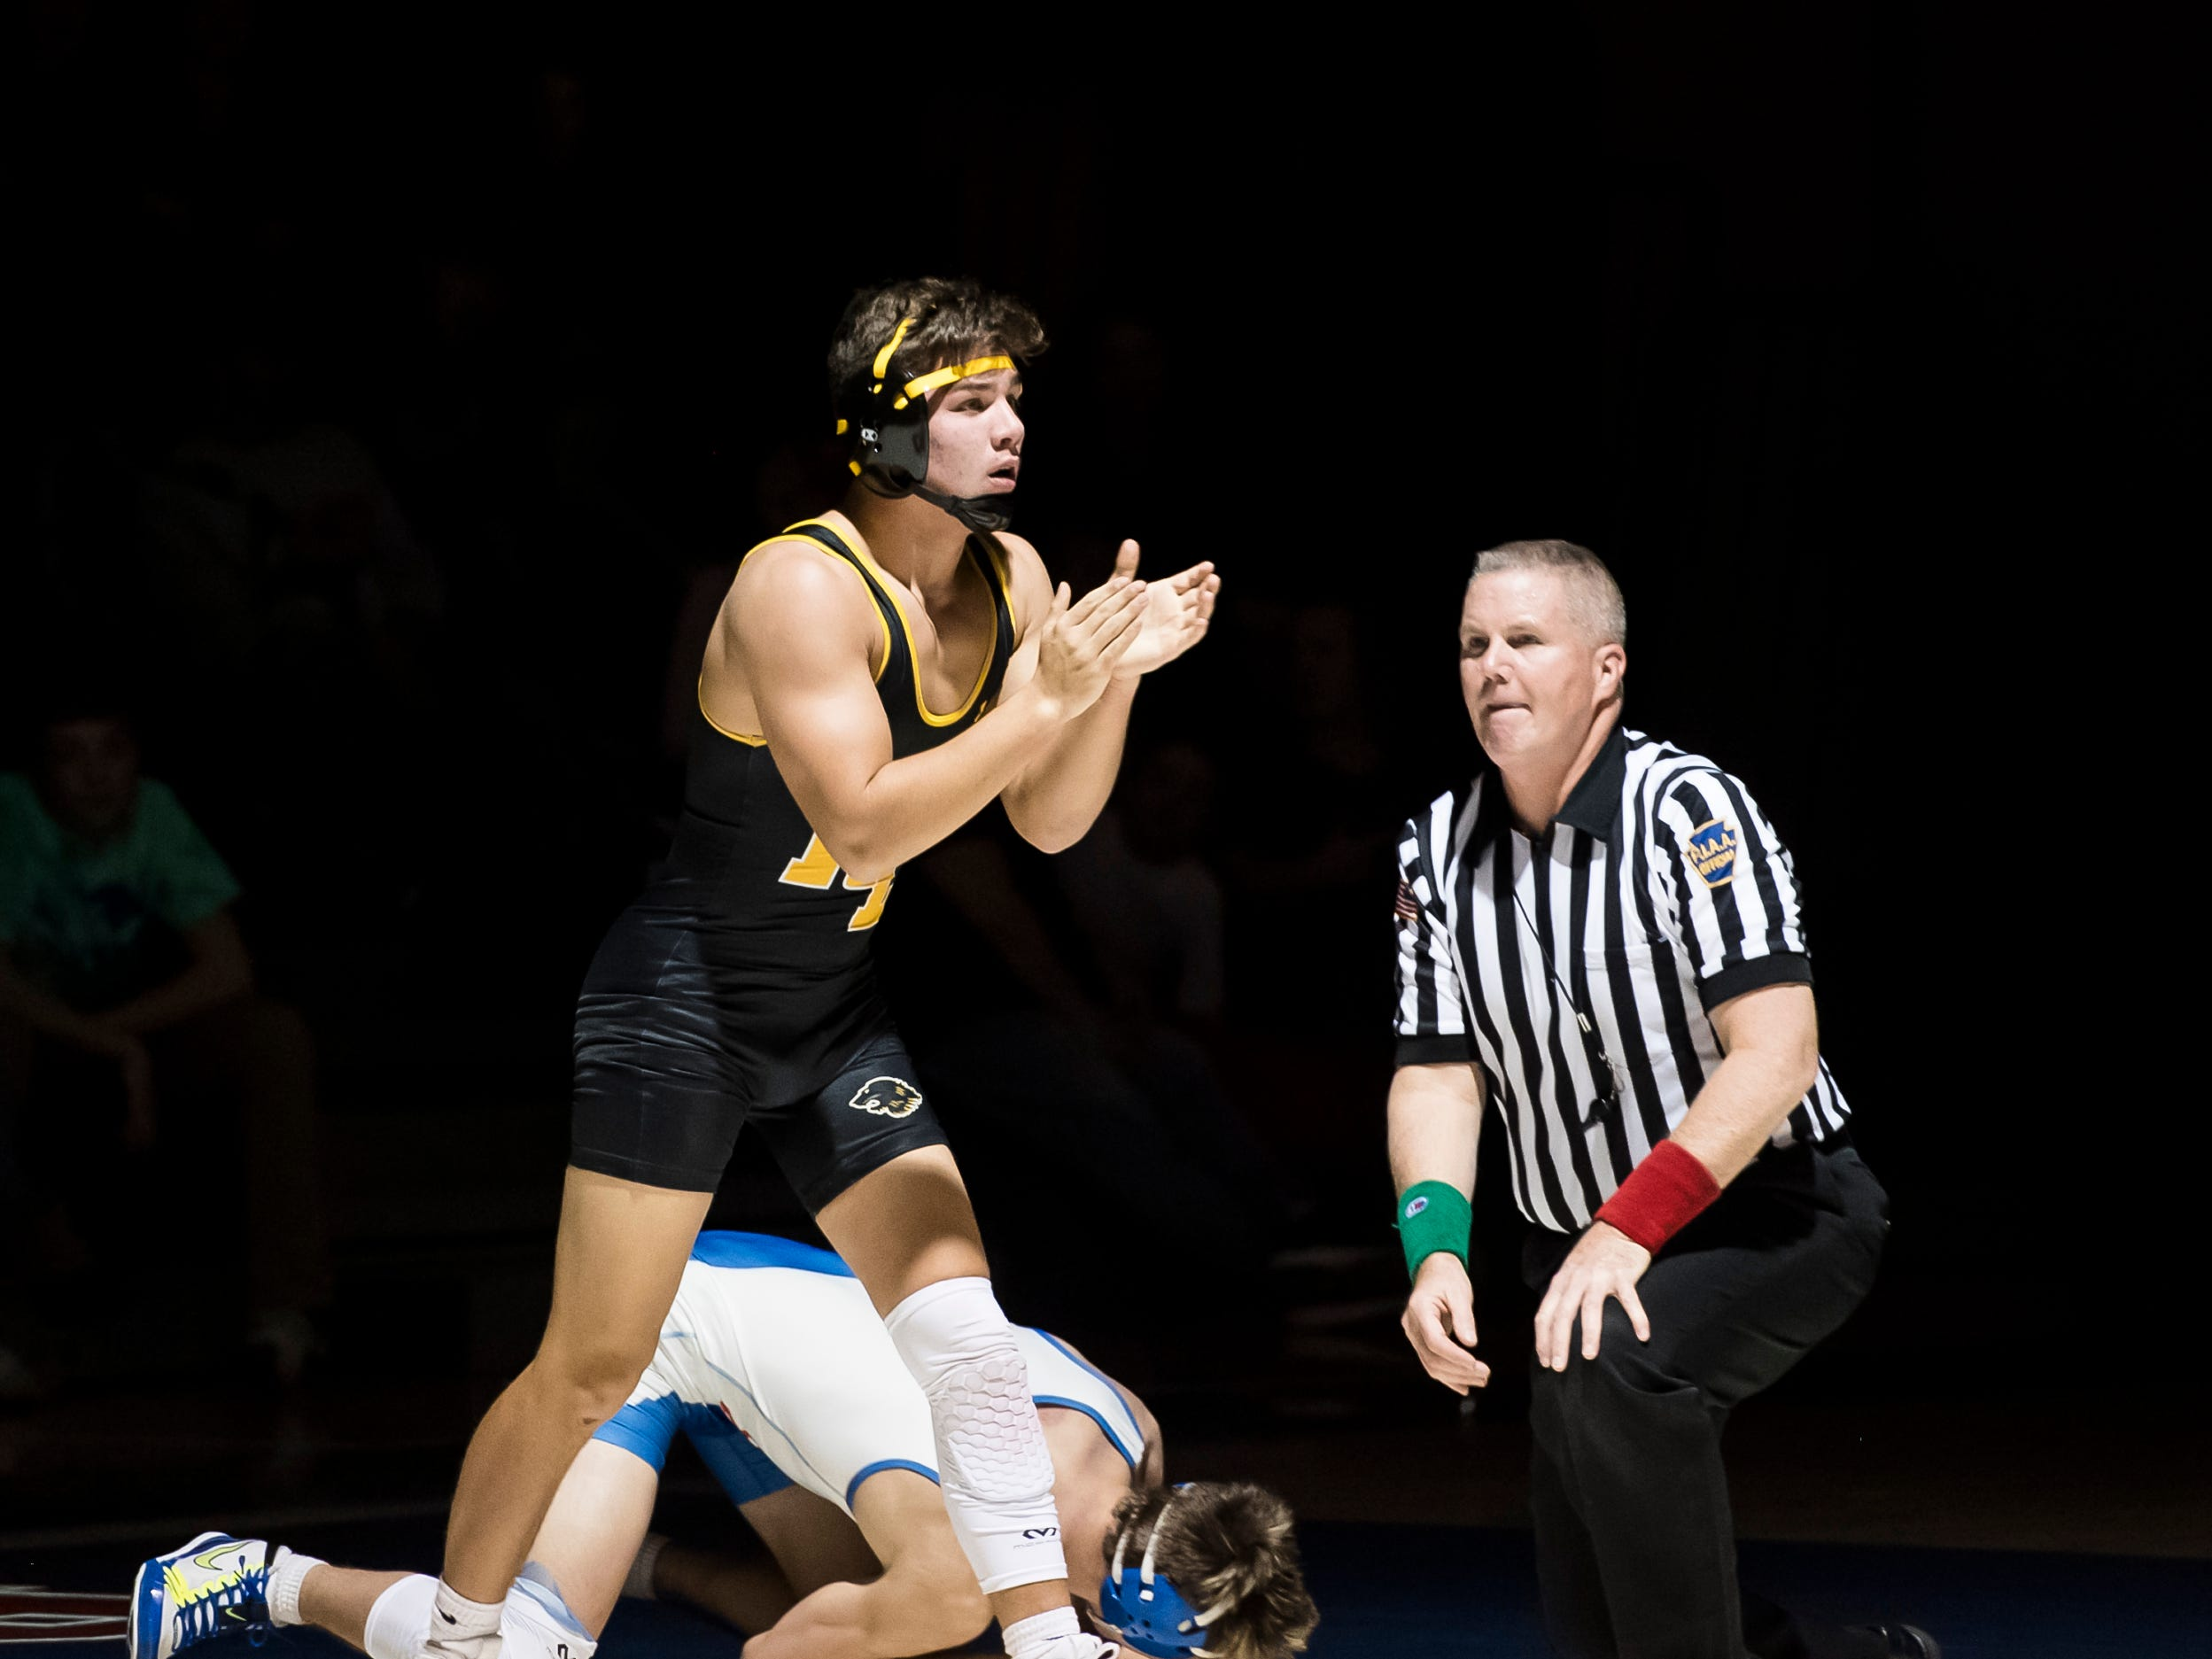 Red Lion's Cole Daugherty claps after defeating Spring Grove's Kahle Zumbrum in the 152-pound bout at Spring Grove High School on Wednesday, December 12, 2018. The Rockets won the dual 68-9.